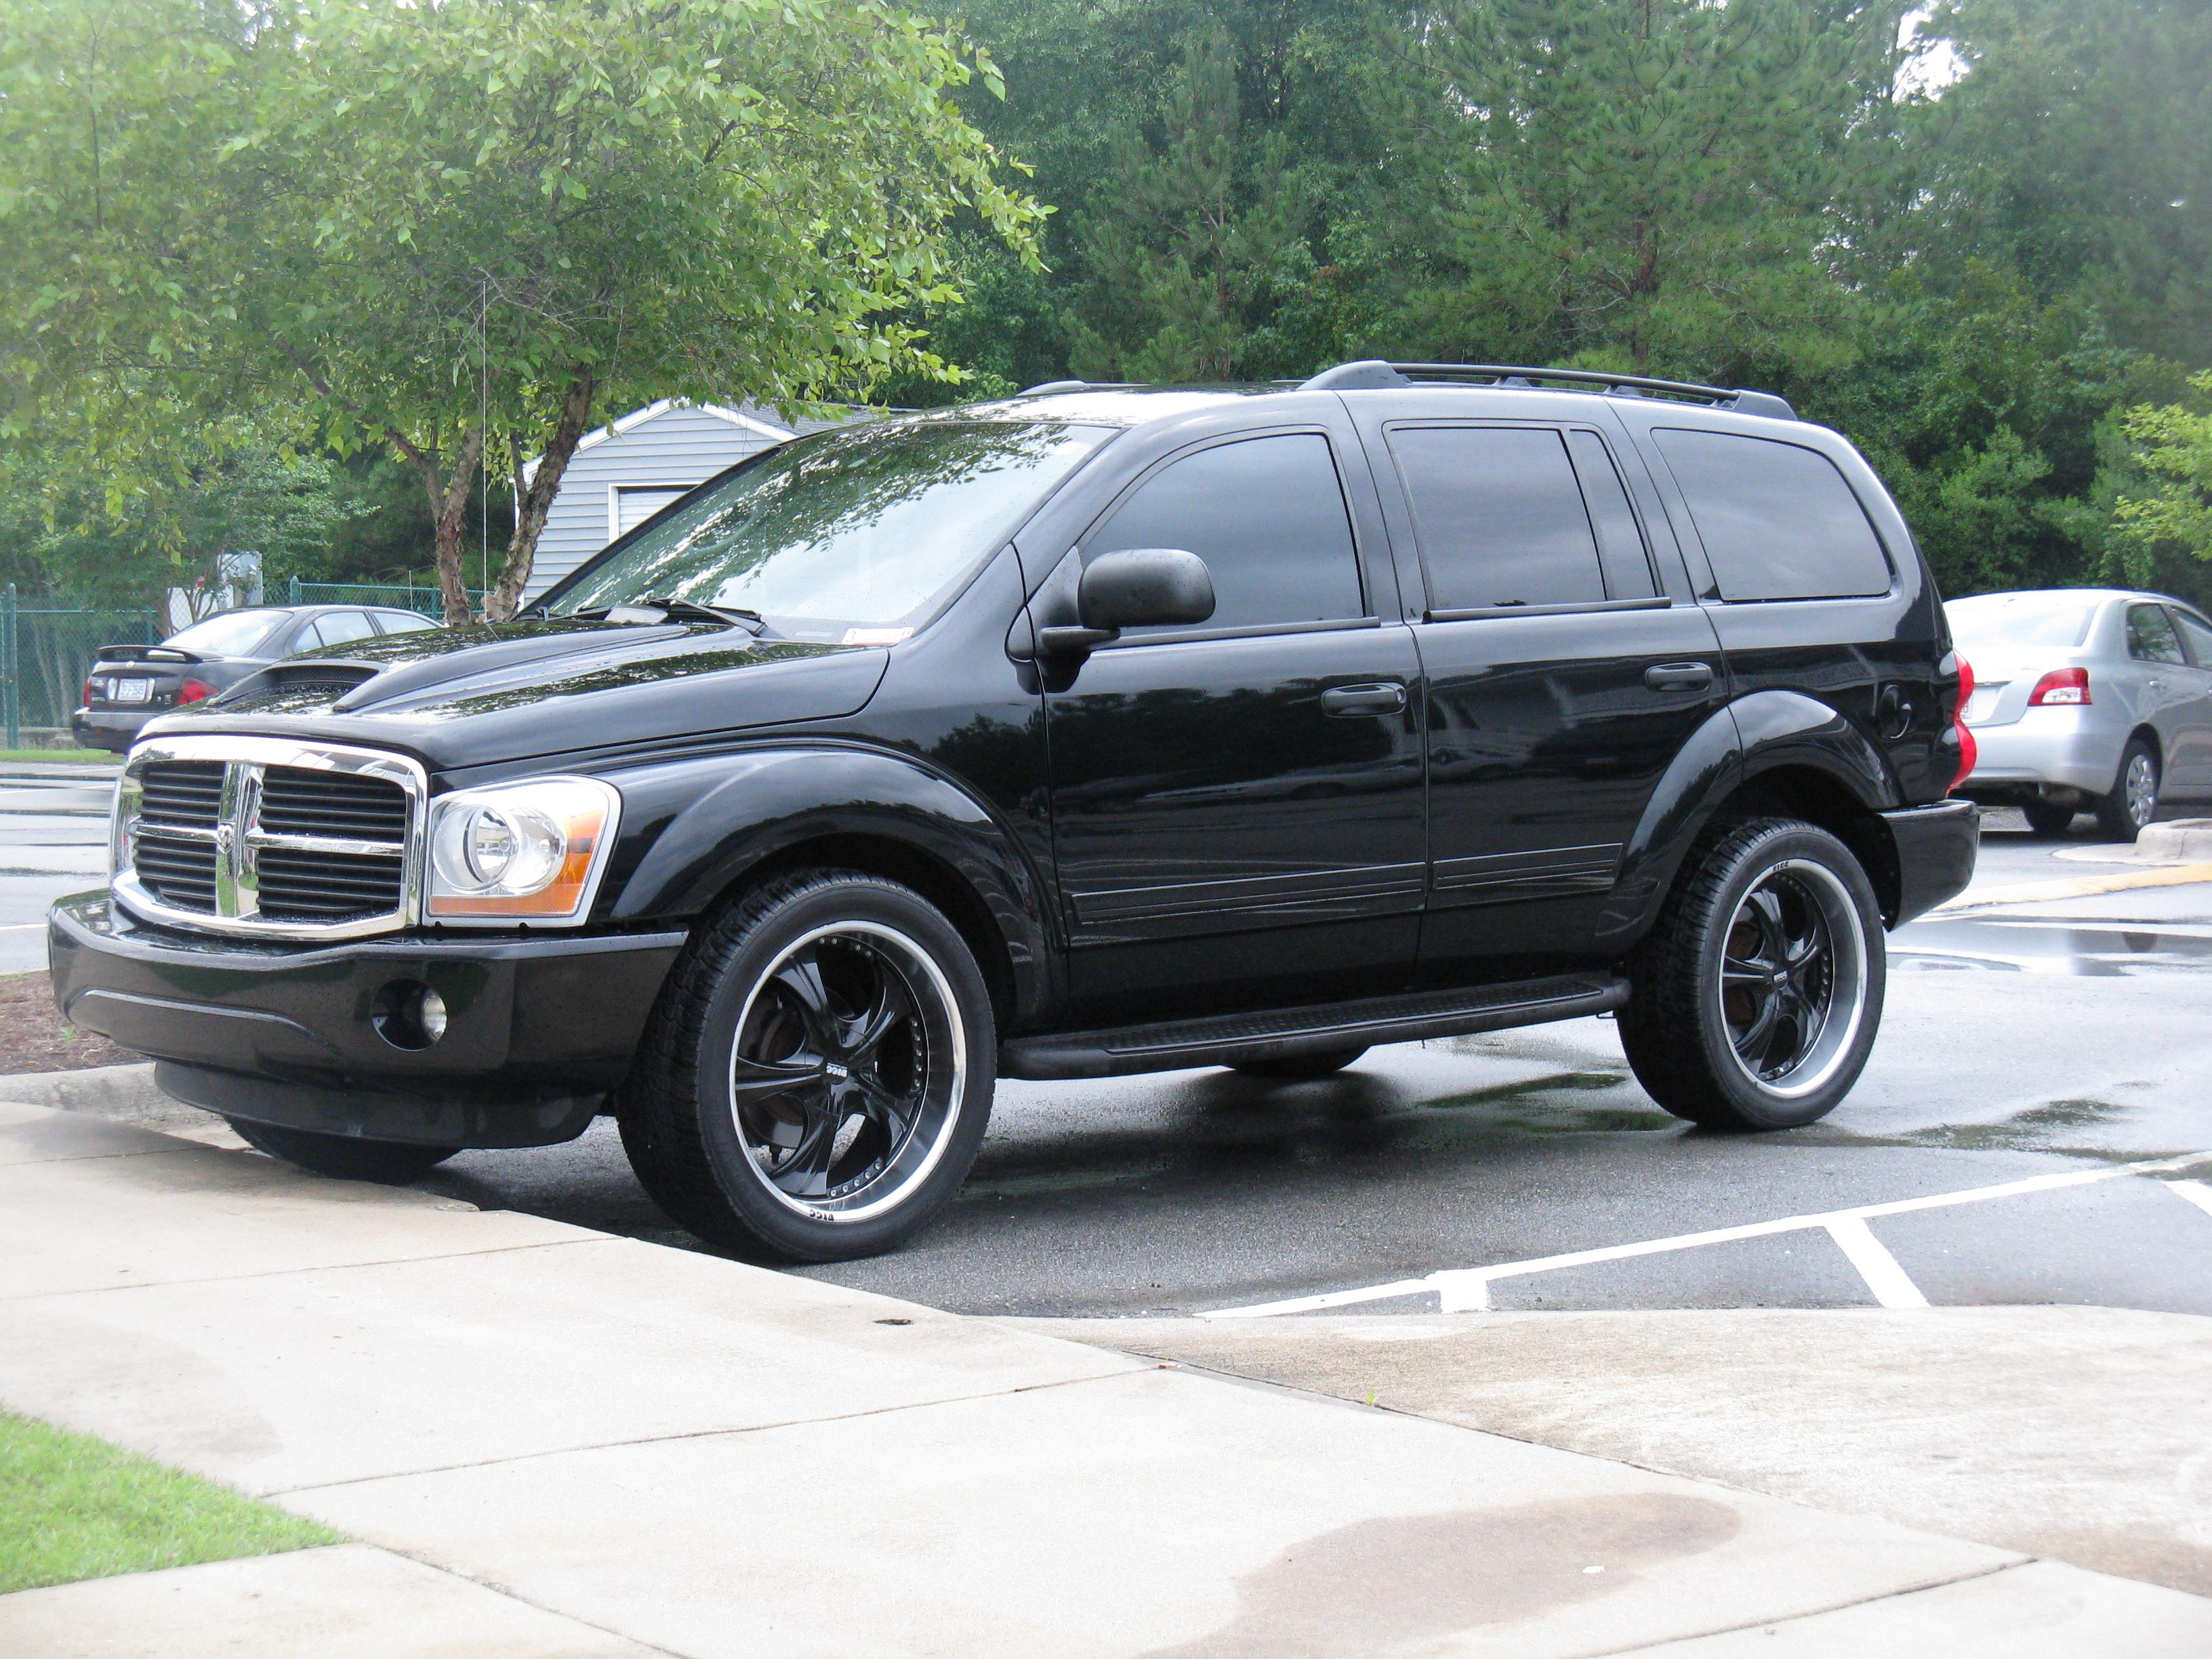 p dubb 2004 dodge durango specs photos modification info. Black Bedroom Furniture Sets. Home Design Ideas